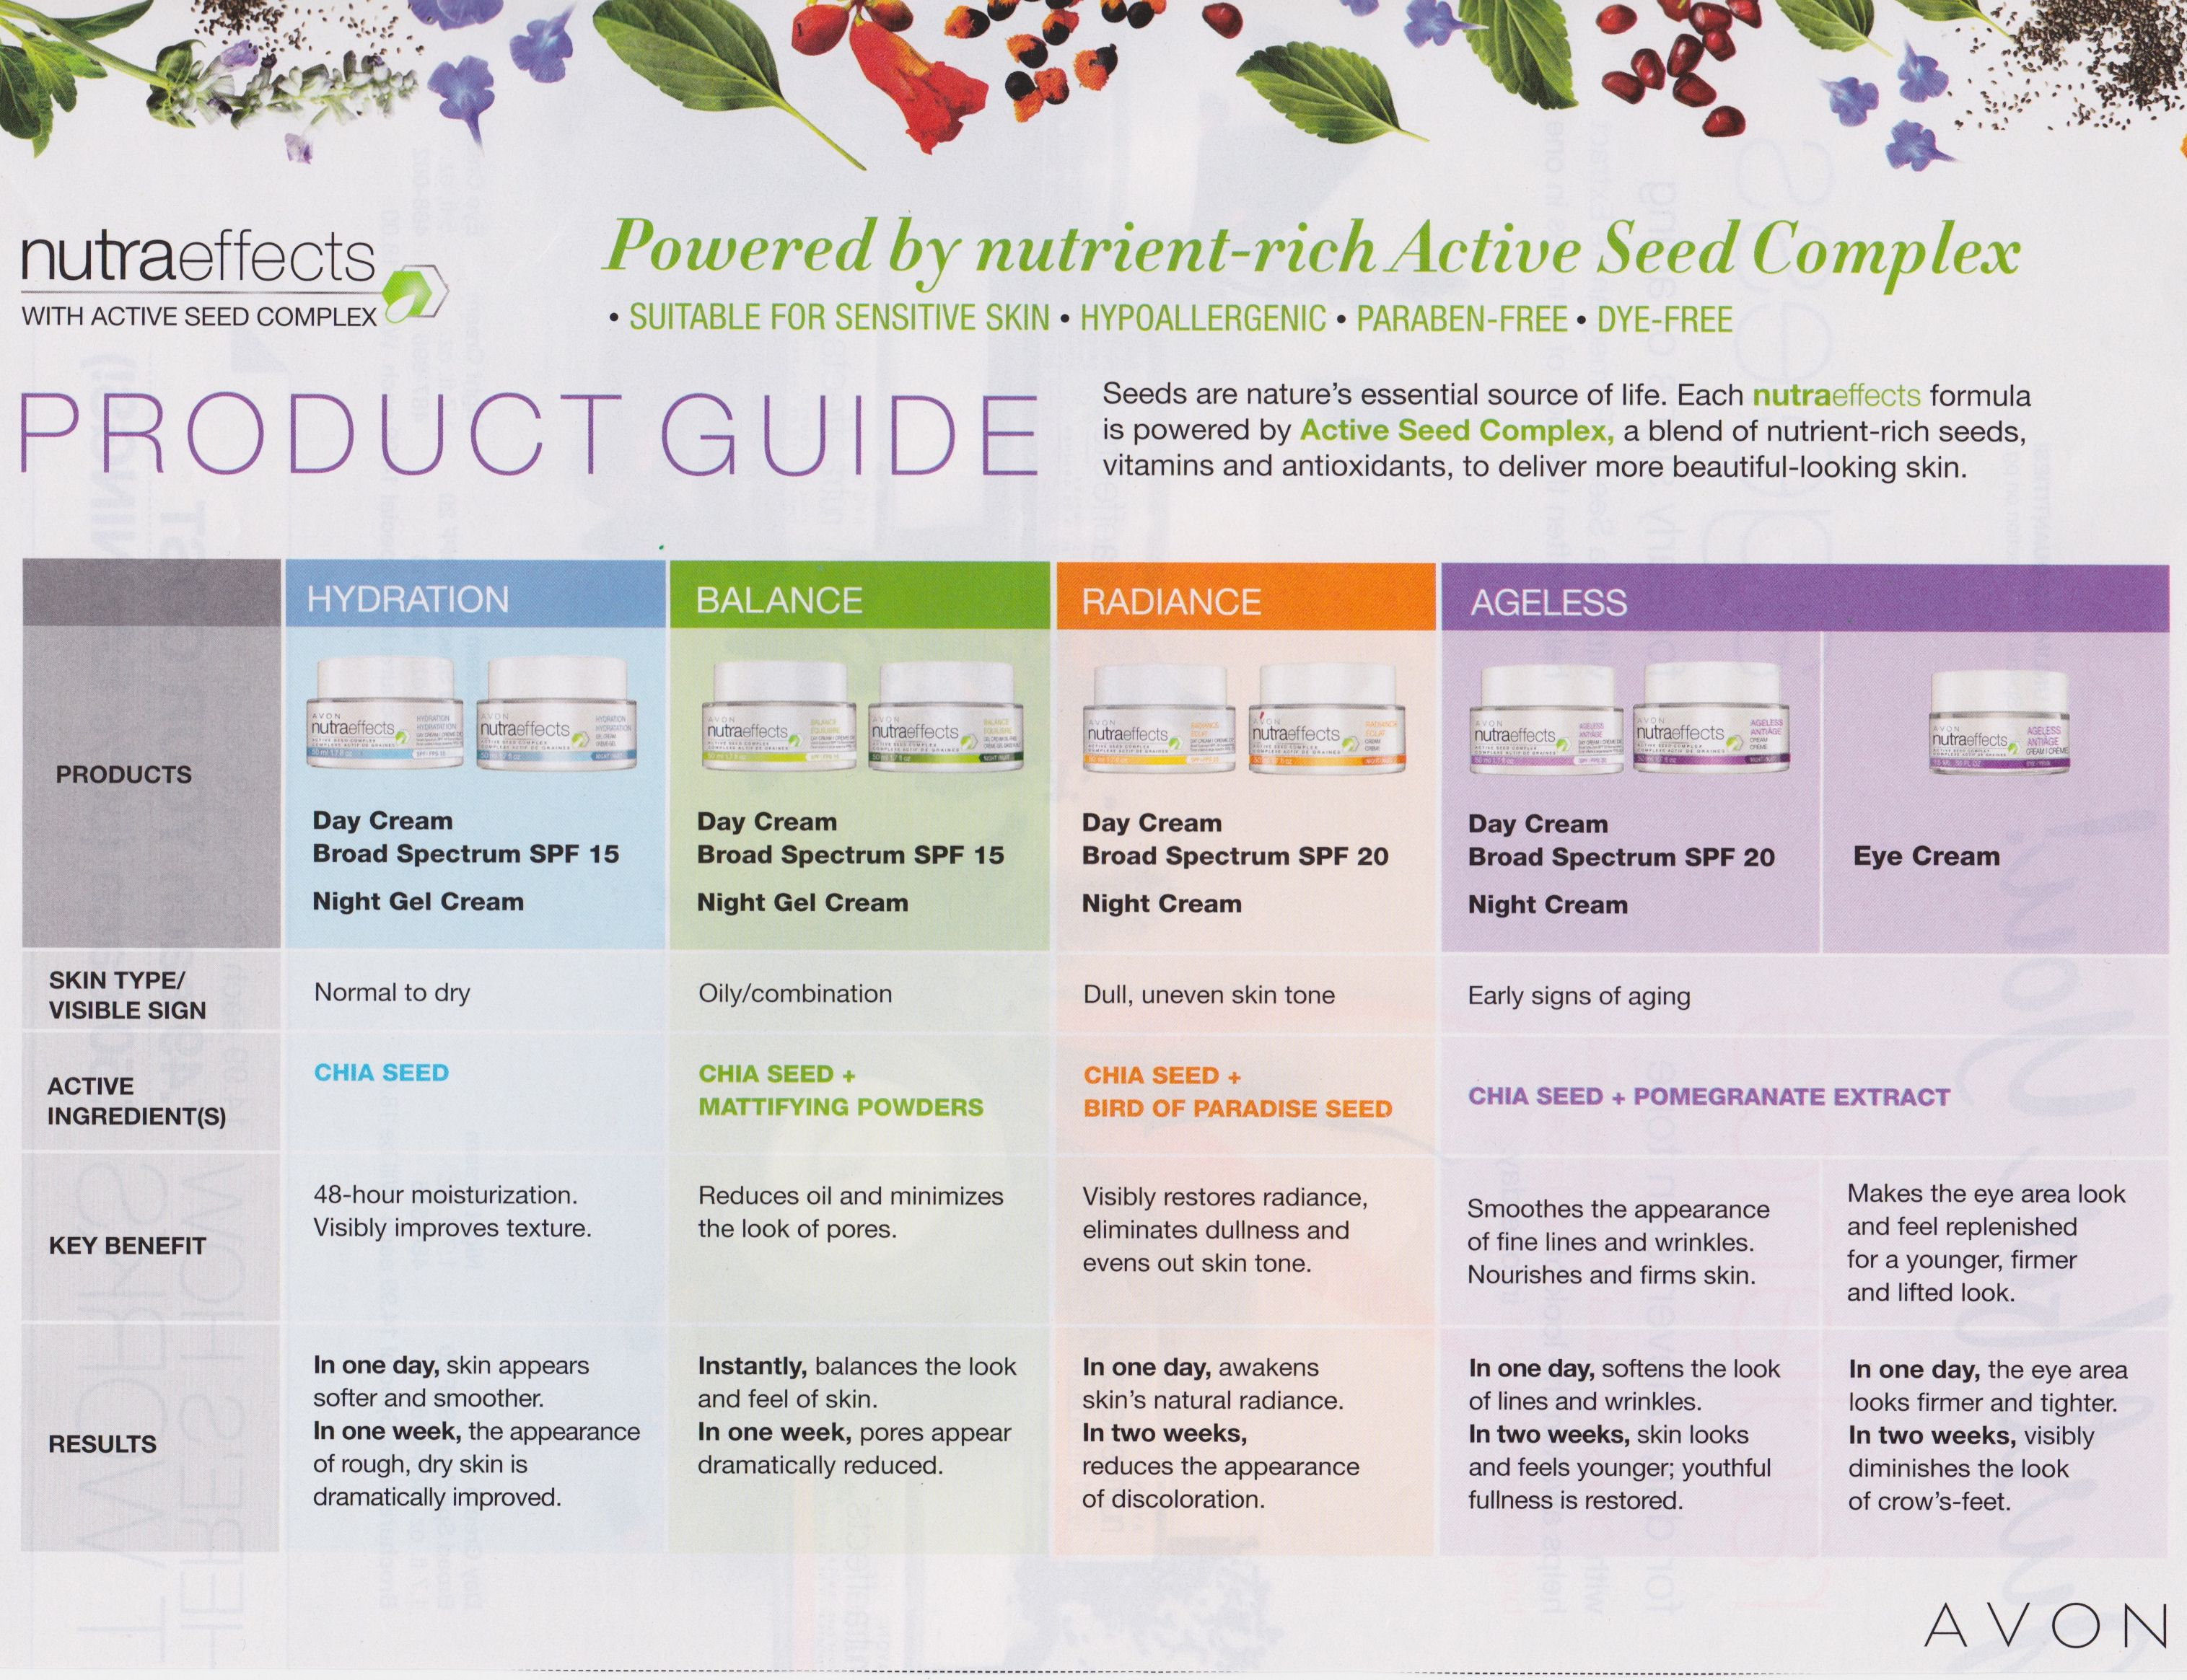 Avon Nutraeffects Product Guide www.youravon.com/dianarobles